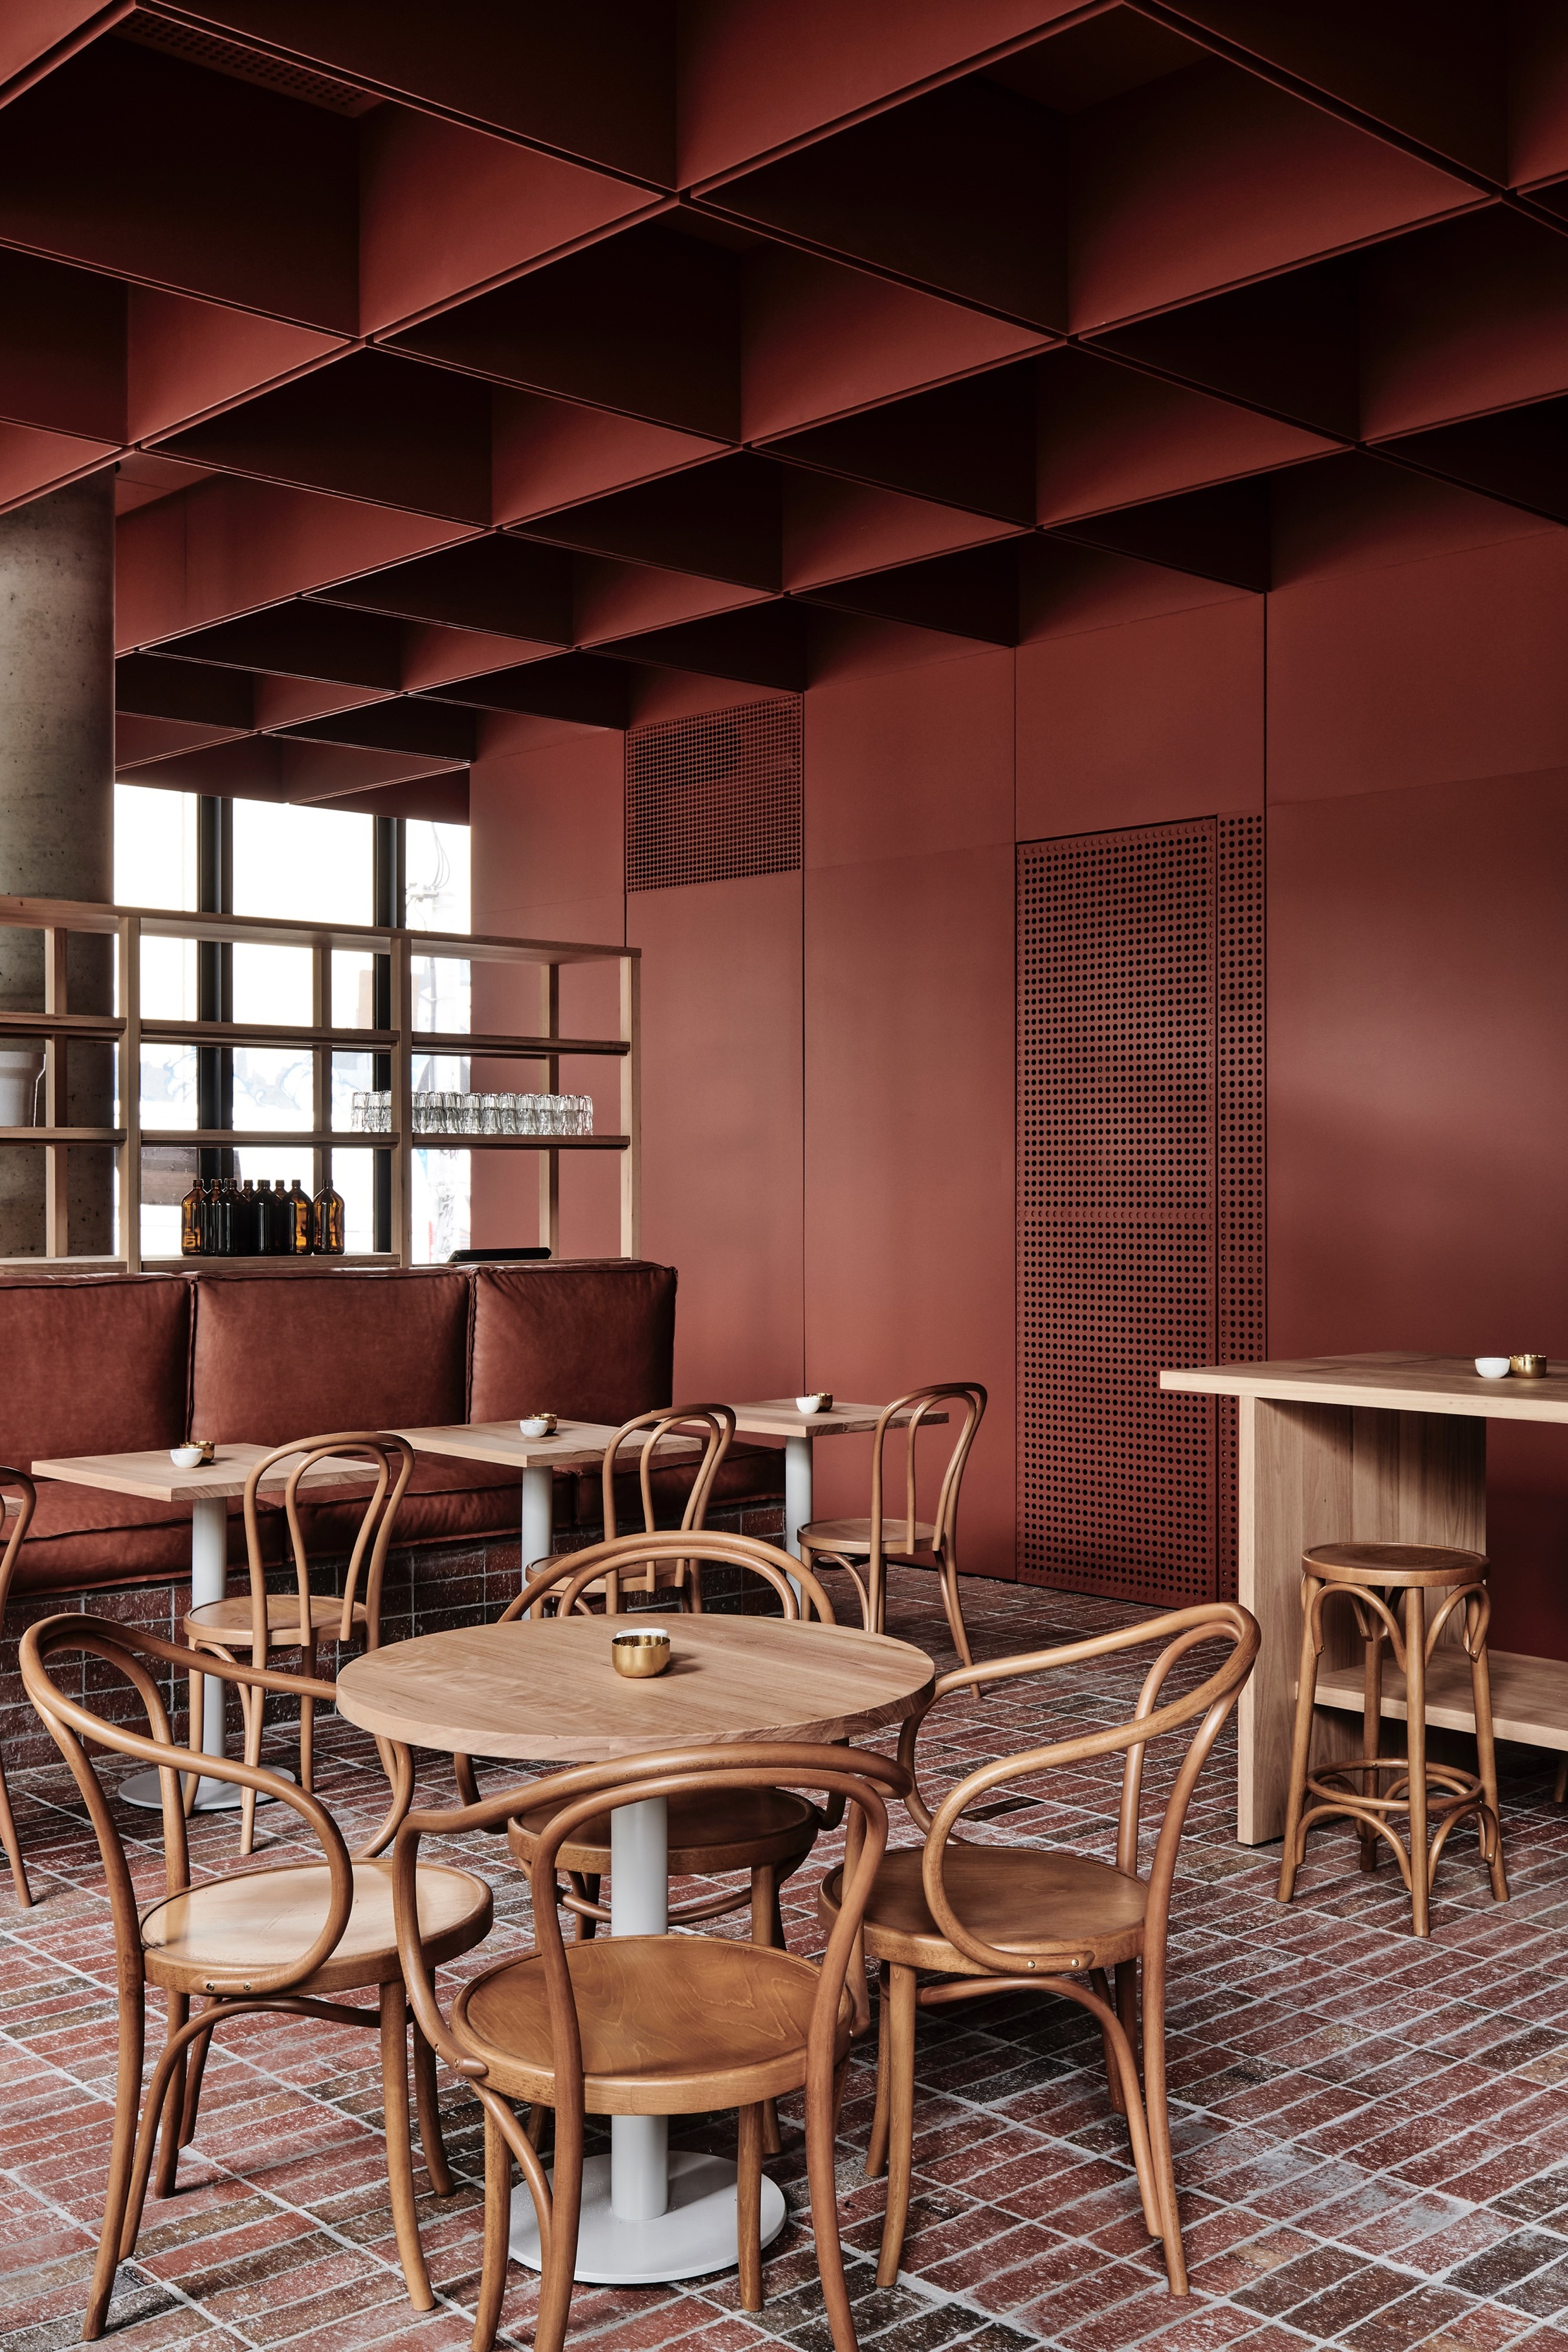 Local Melbourne Cafe's And Interior Design Trendy Lifestyle Places To Eat In Australia